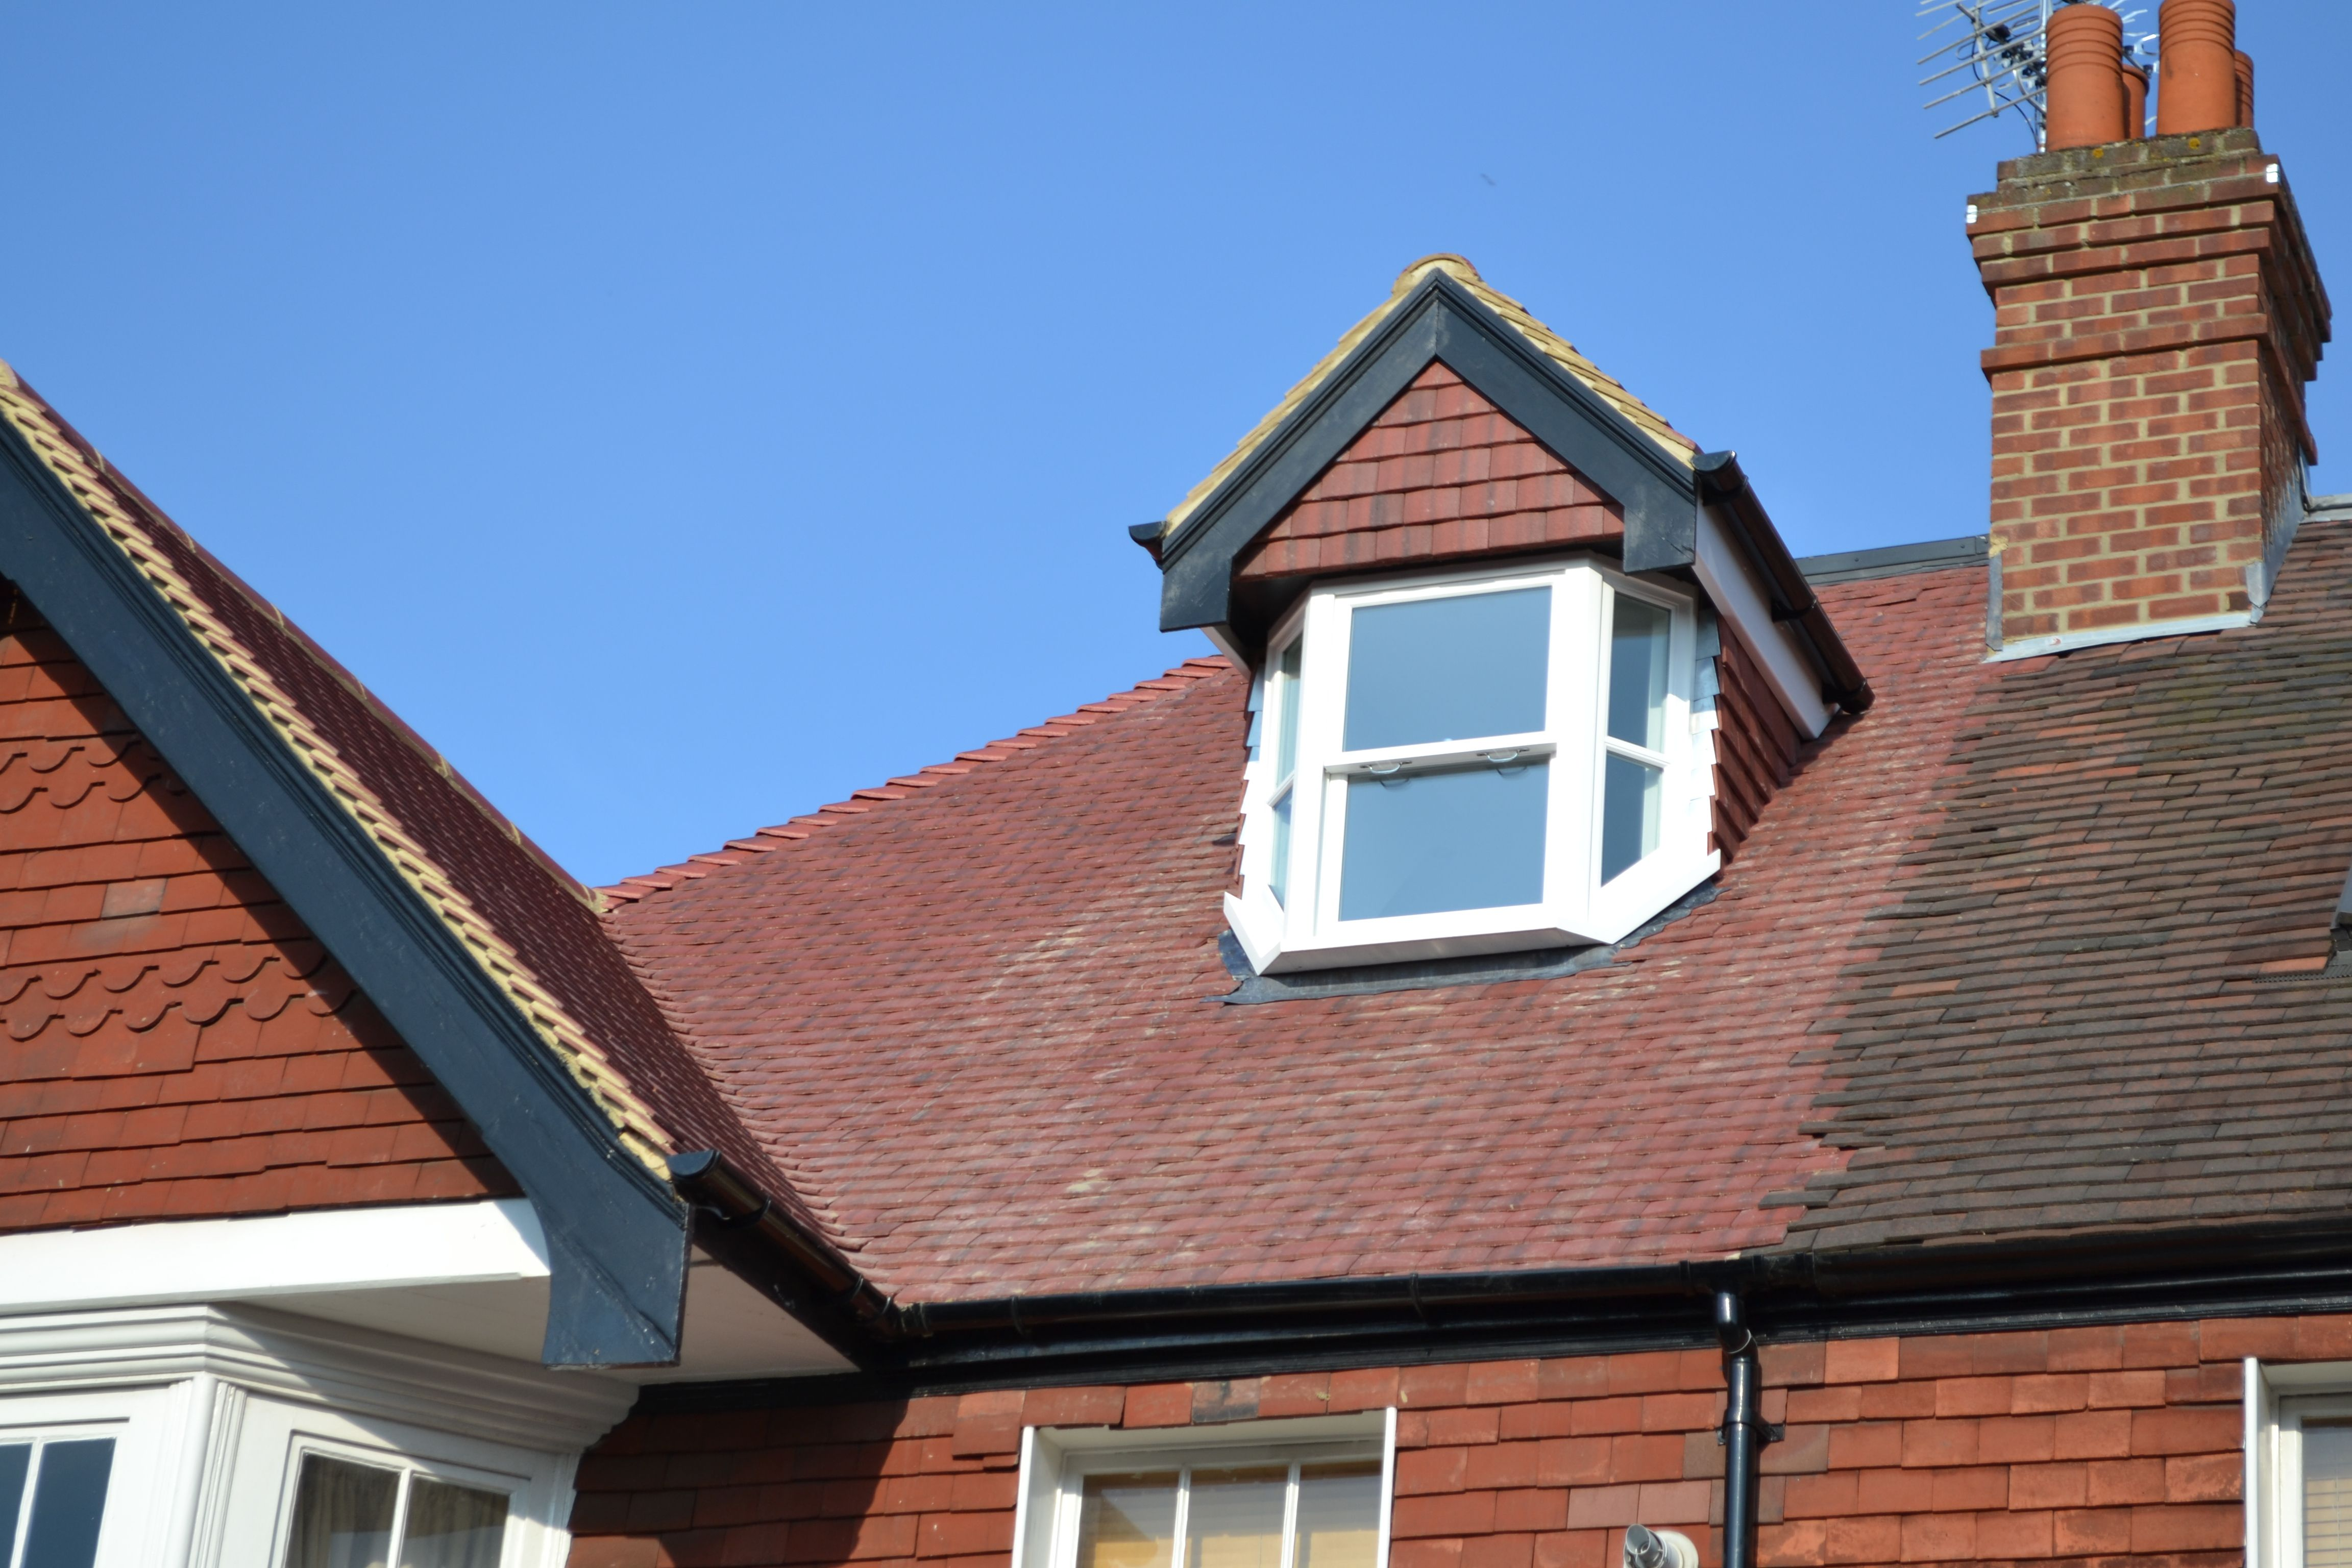 Hanging Clay Tiles Or Composite Slate Tiles To Dormer Face And Cheeks White Pvc Fascia Black Pvc Gutter 3 Layer High P Dormers Dormer Loft Conversion Flat Roof